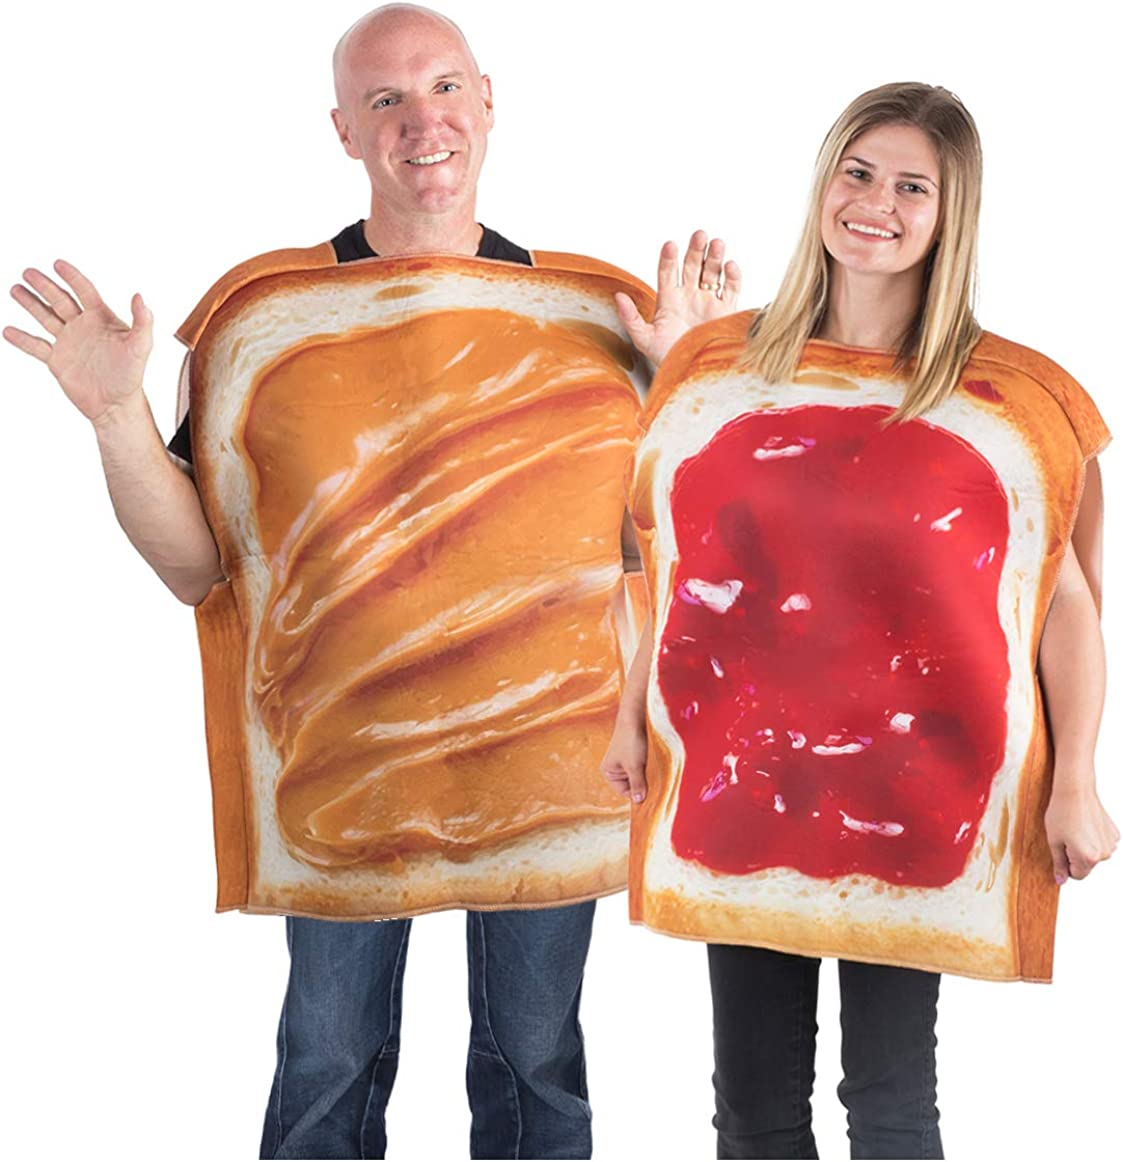 Top 10 Giant Food Costume